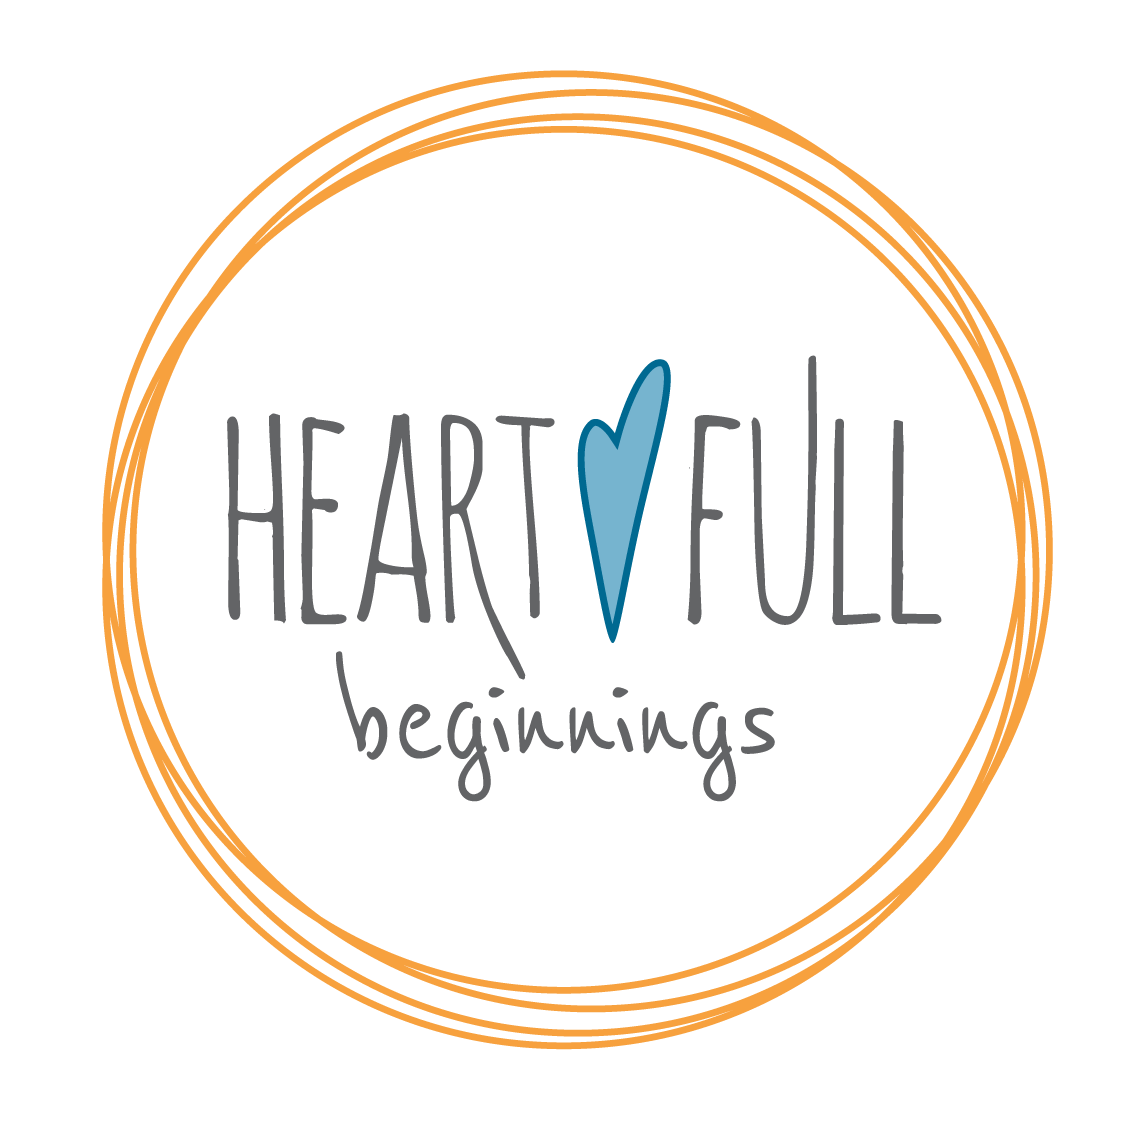 Heart Full Beginnings, LLC